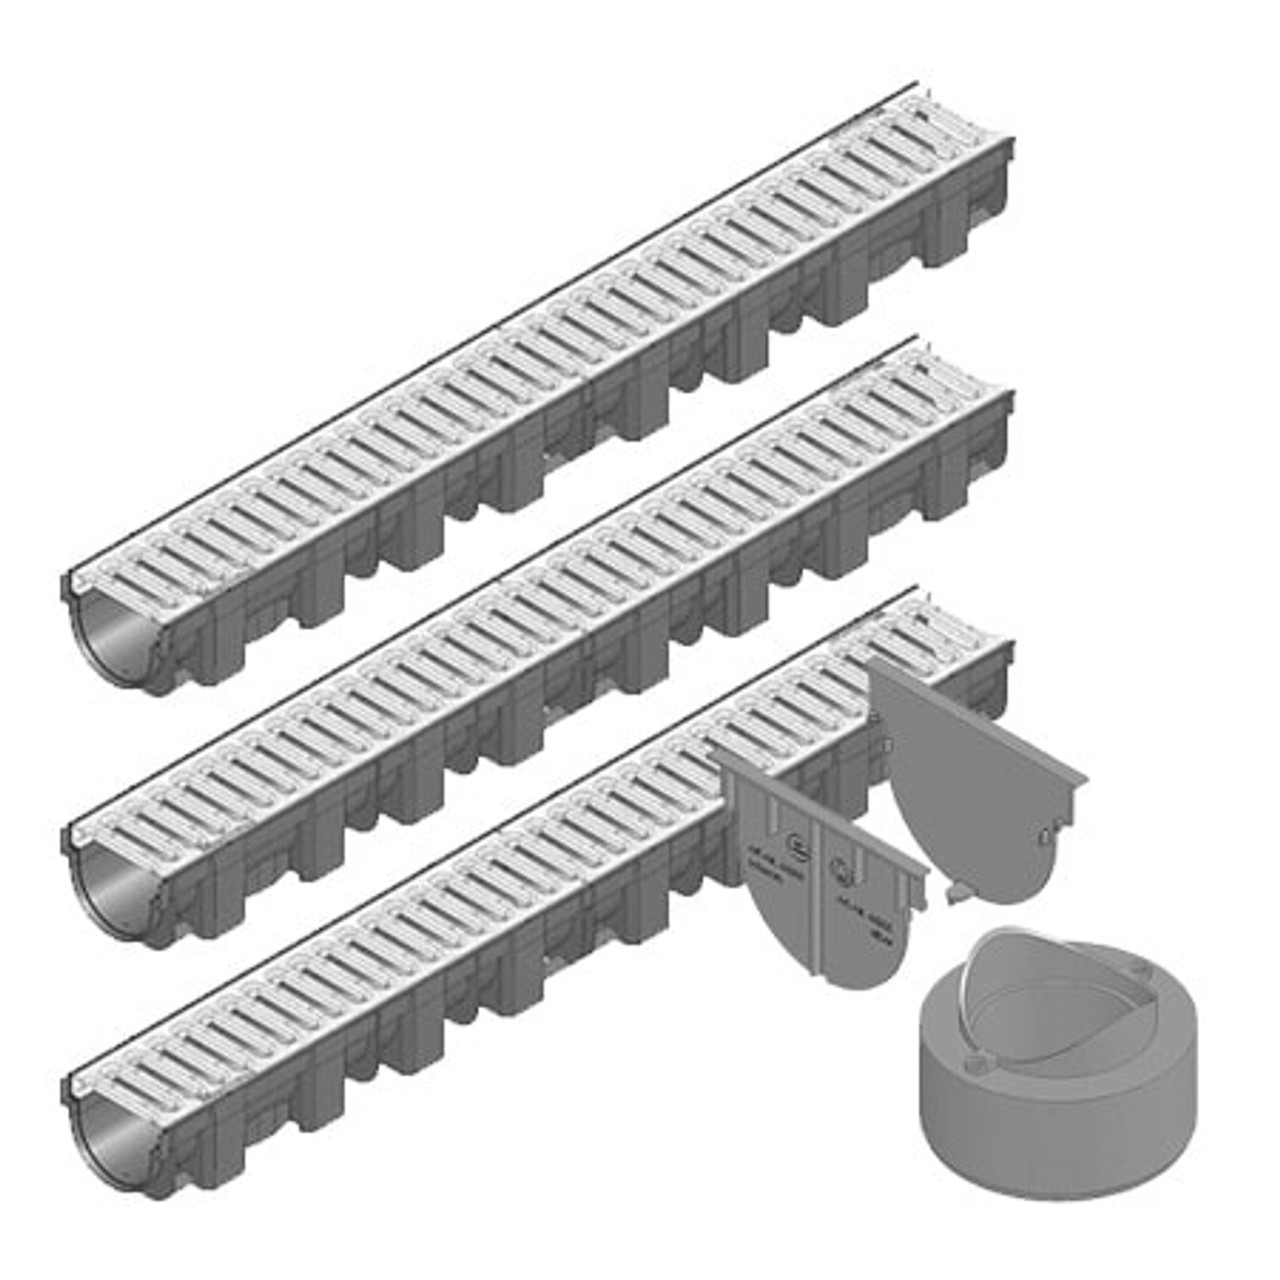 TOPX channel drain with galvanised steel grating; three channels with connection pack.